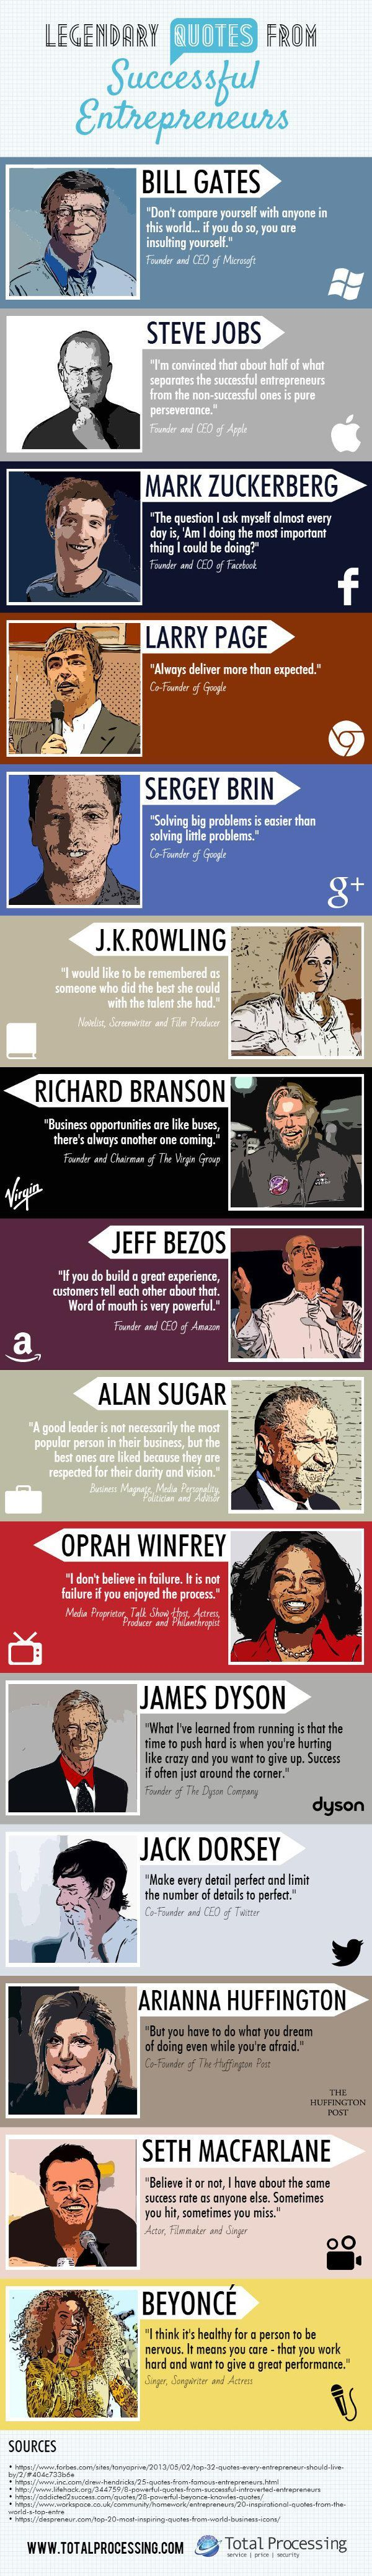 These inspirational quotes will get you motivated. See what successful entrepreneurs - from Bill Gates to Steve Jobs to Beyonce - say about overcoming challenges and performing at their best.